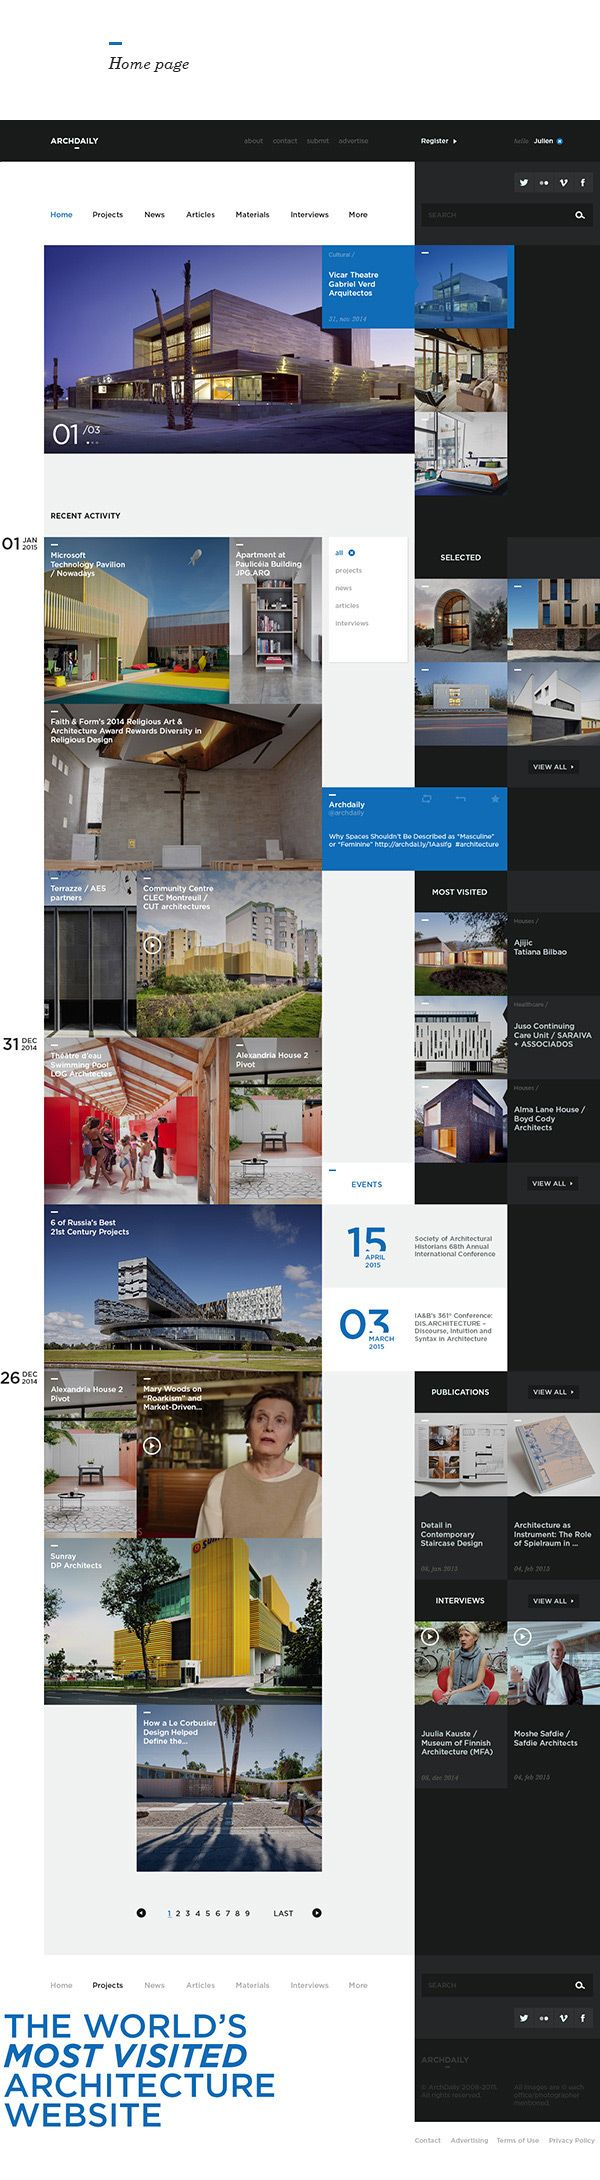 http://www.webdesignserved.com/gallery/Archdaily-Redesign-Study/23483641